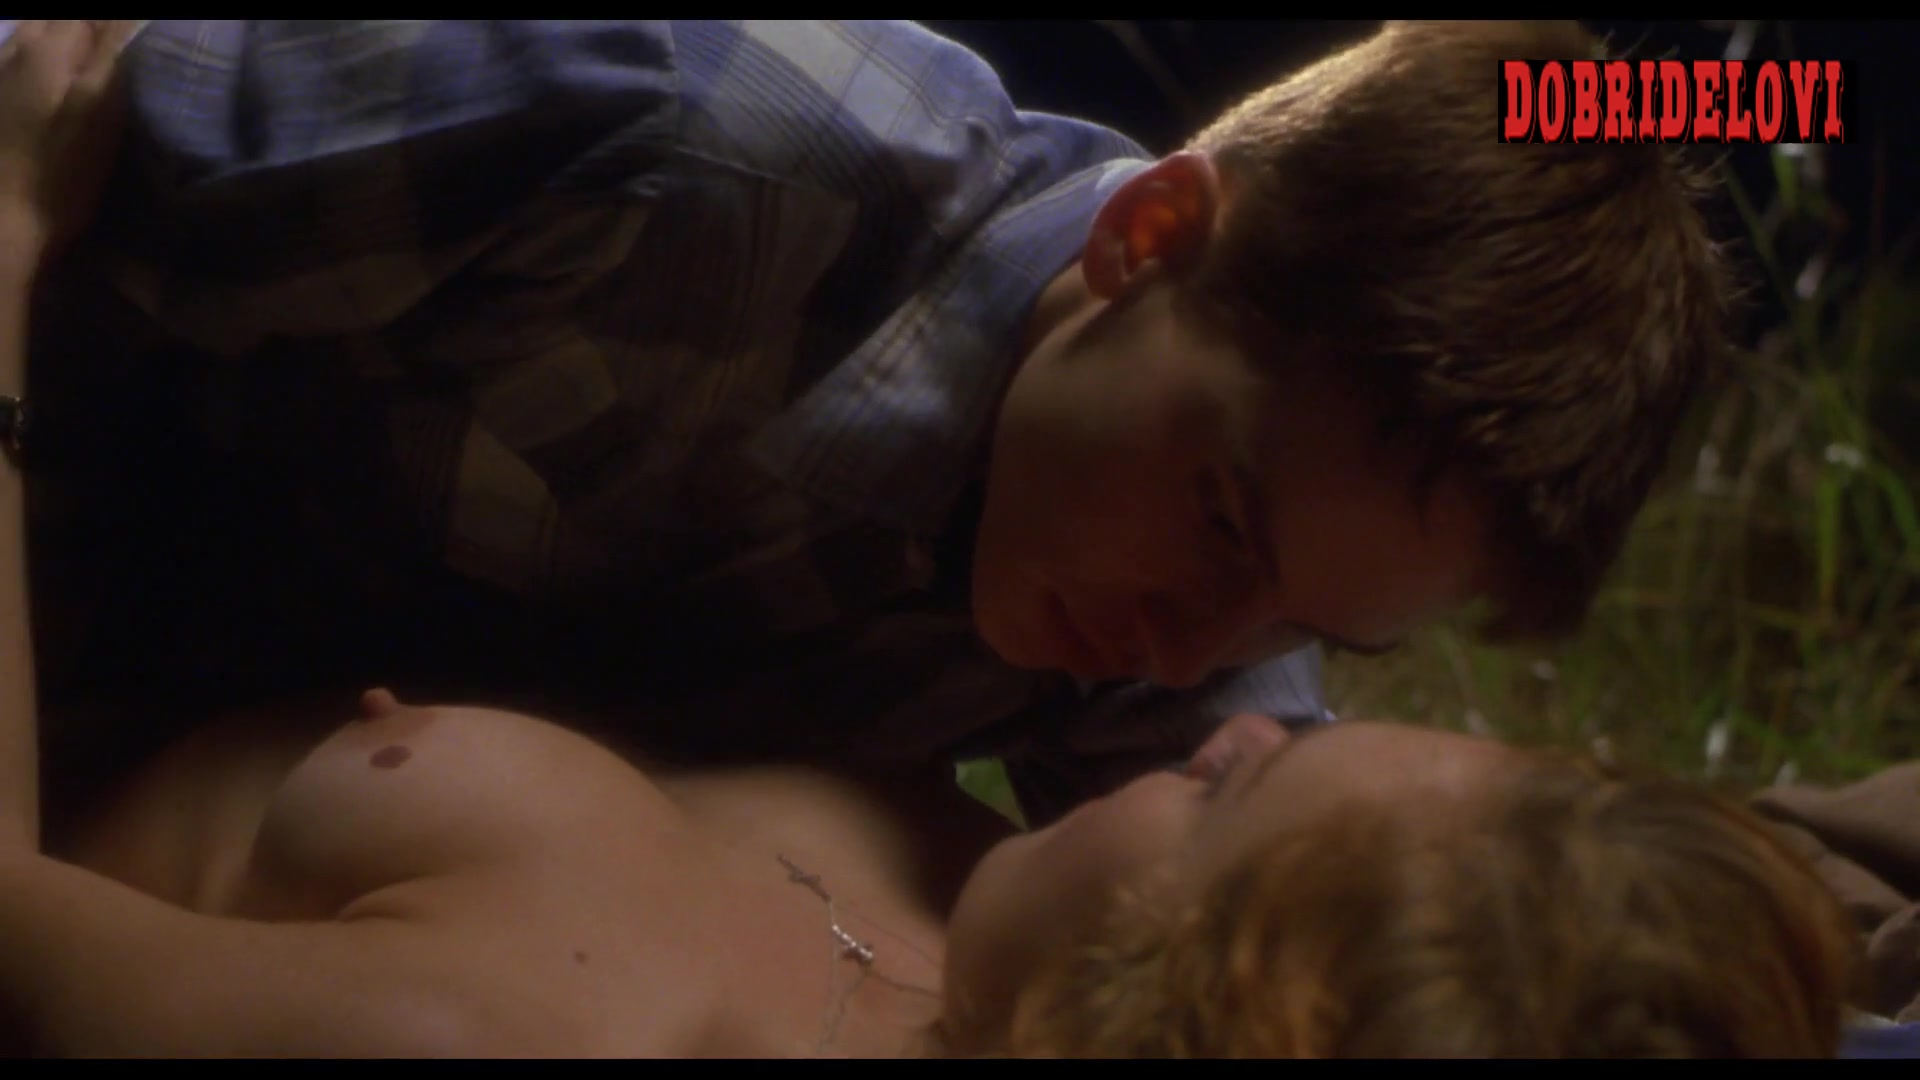 Chloë Sevigny and Hilary Swank missionary sex scene from Boys Don't Cry